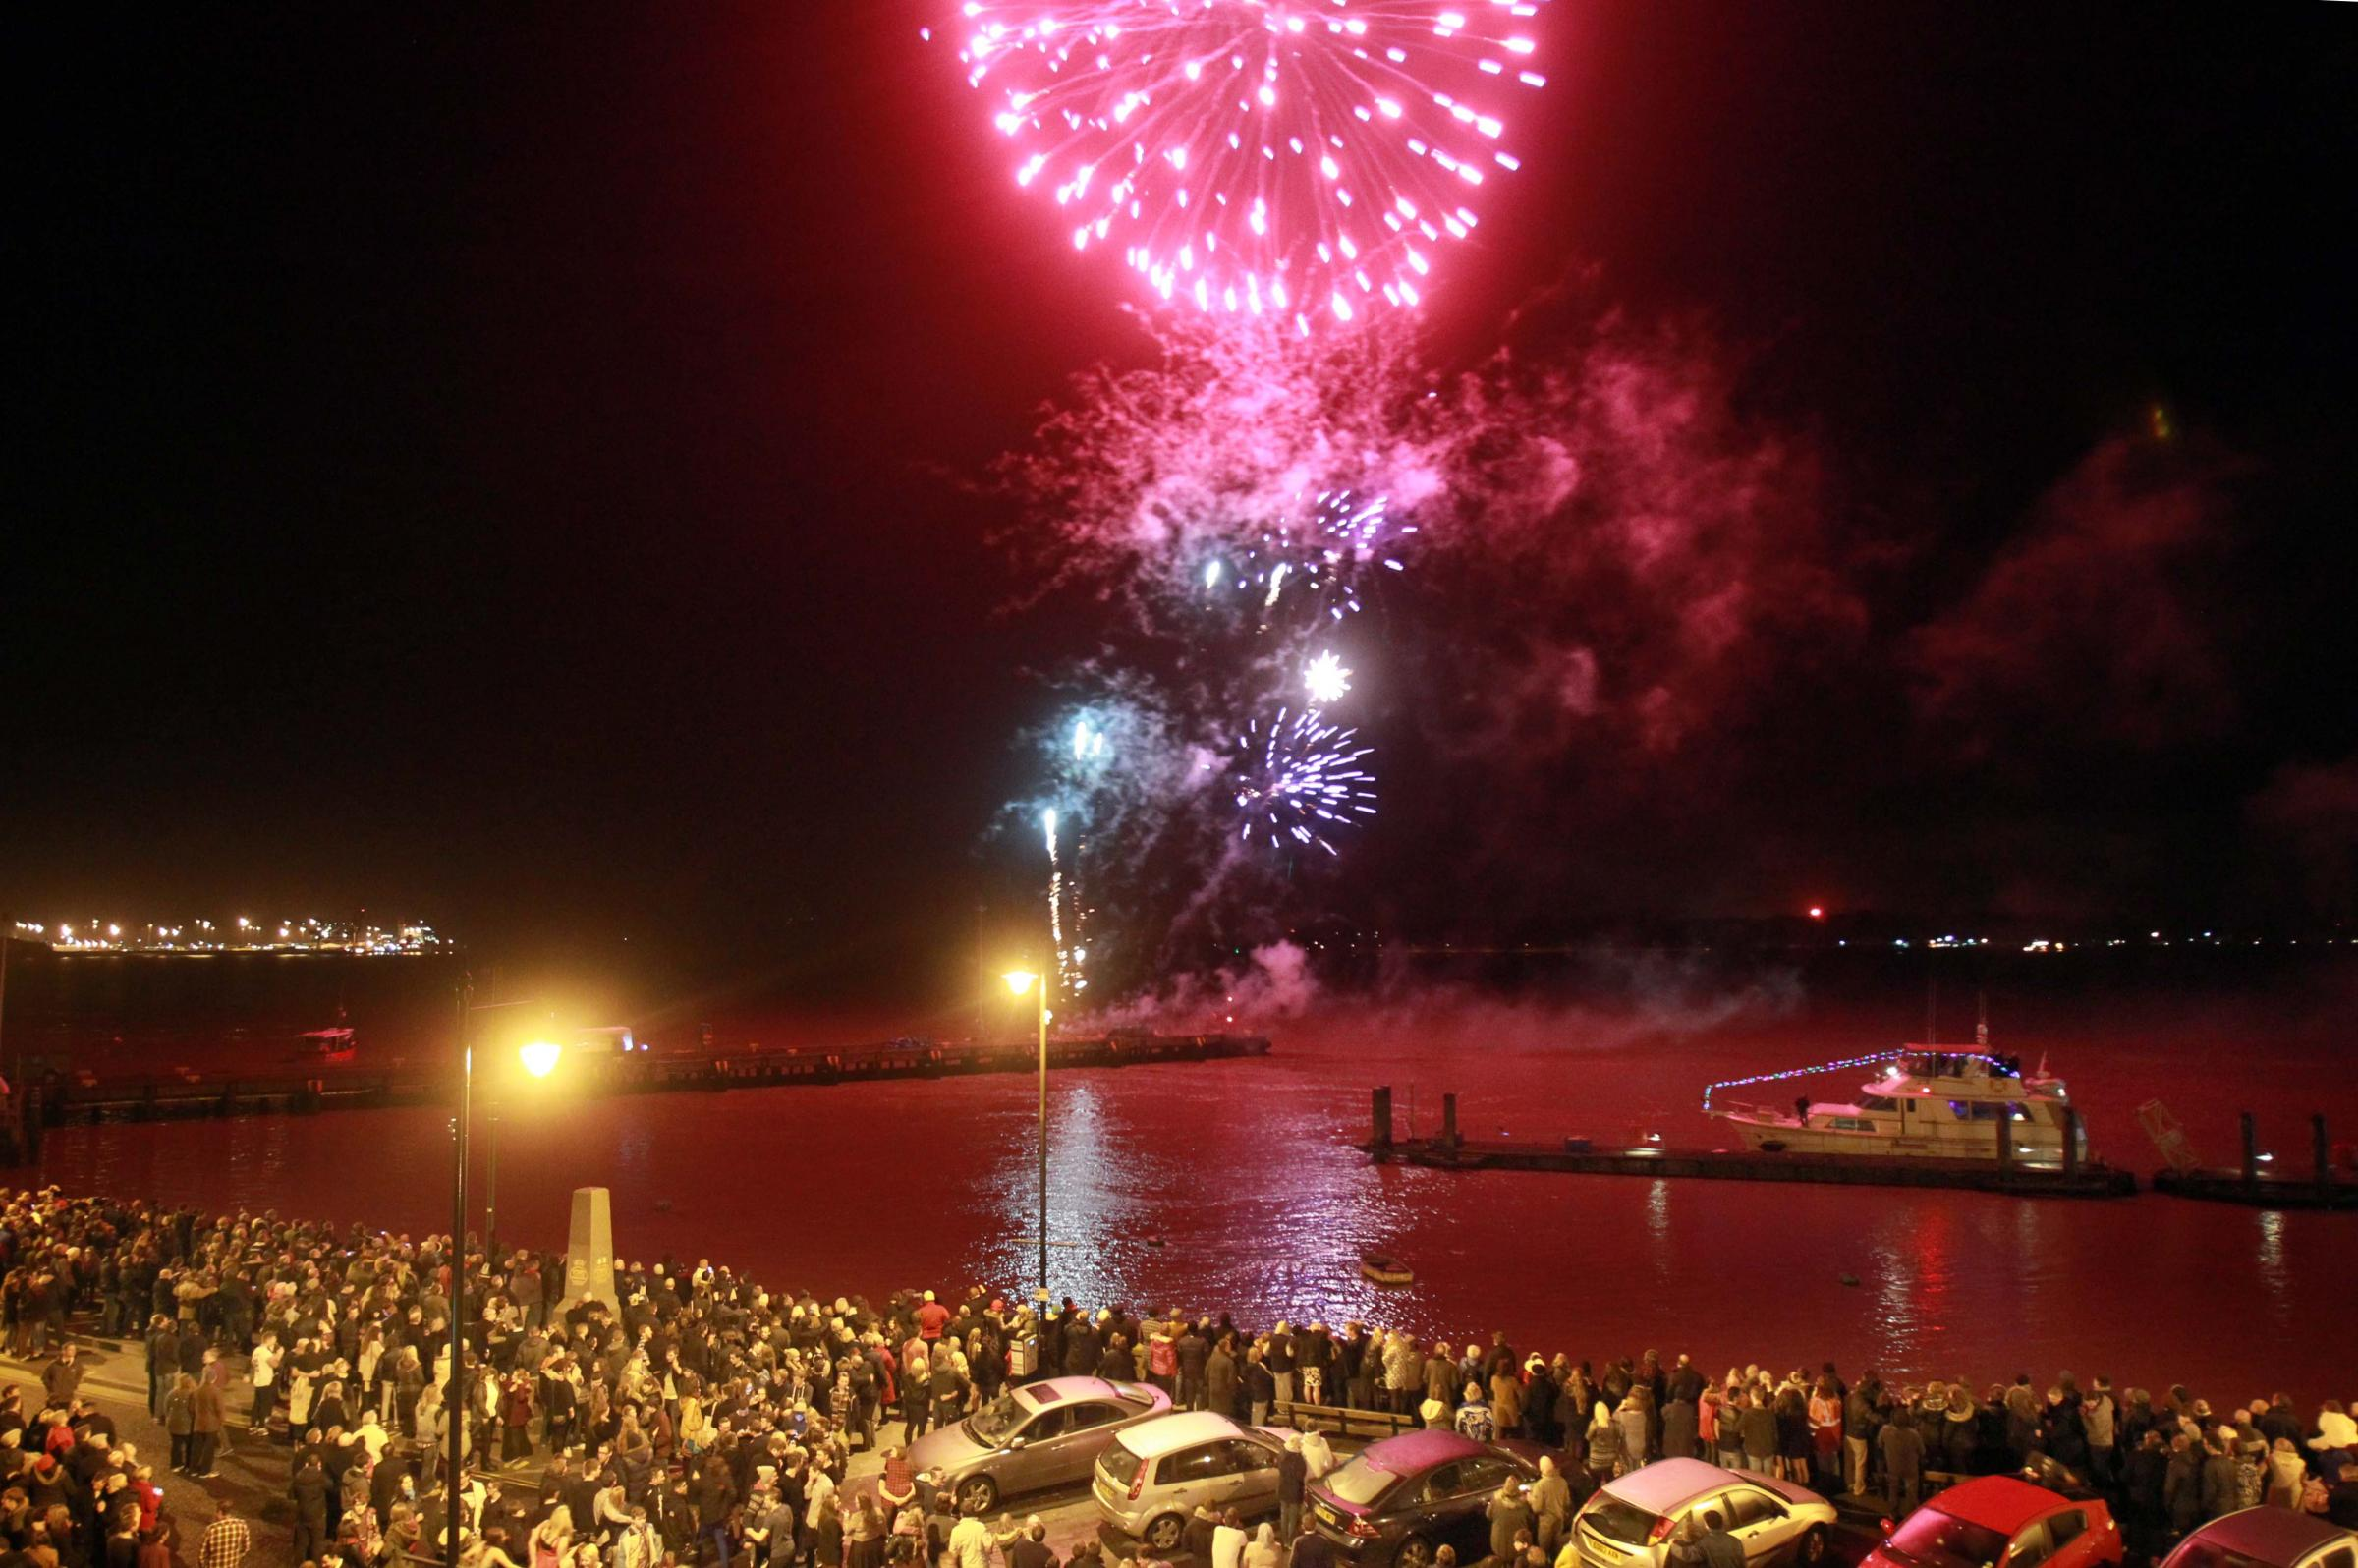 Thousands are set to enjoy New Year's Eve fireworks extravaganza